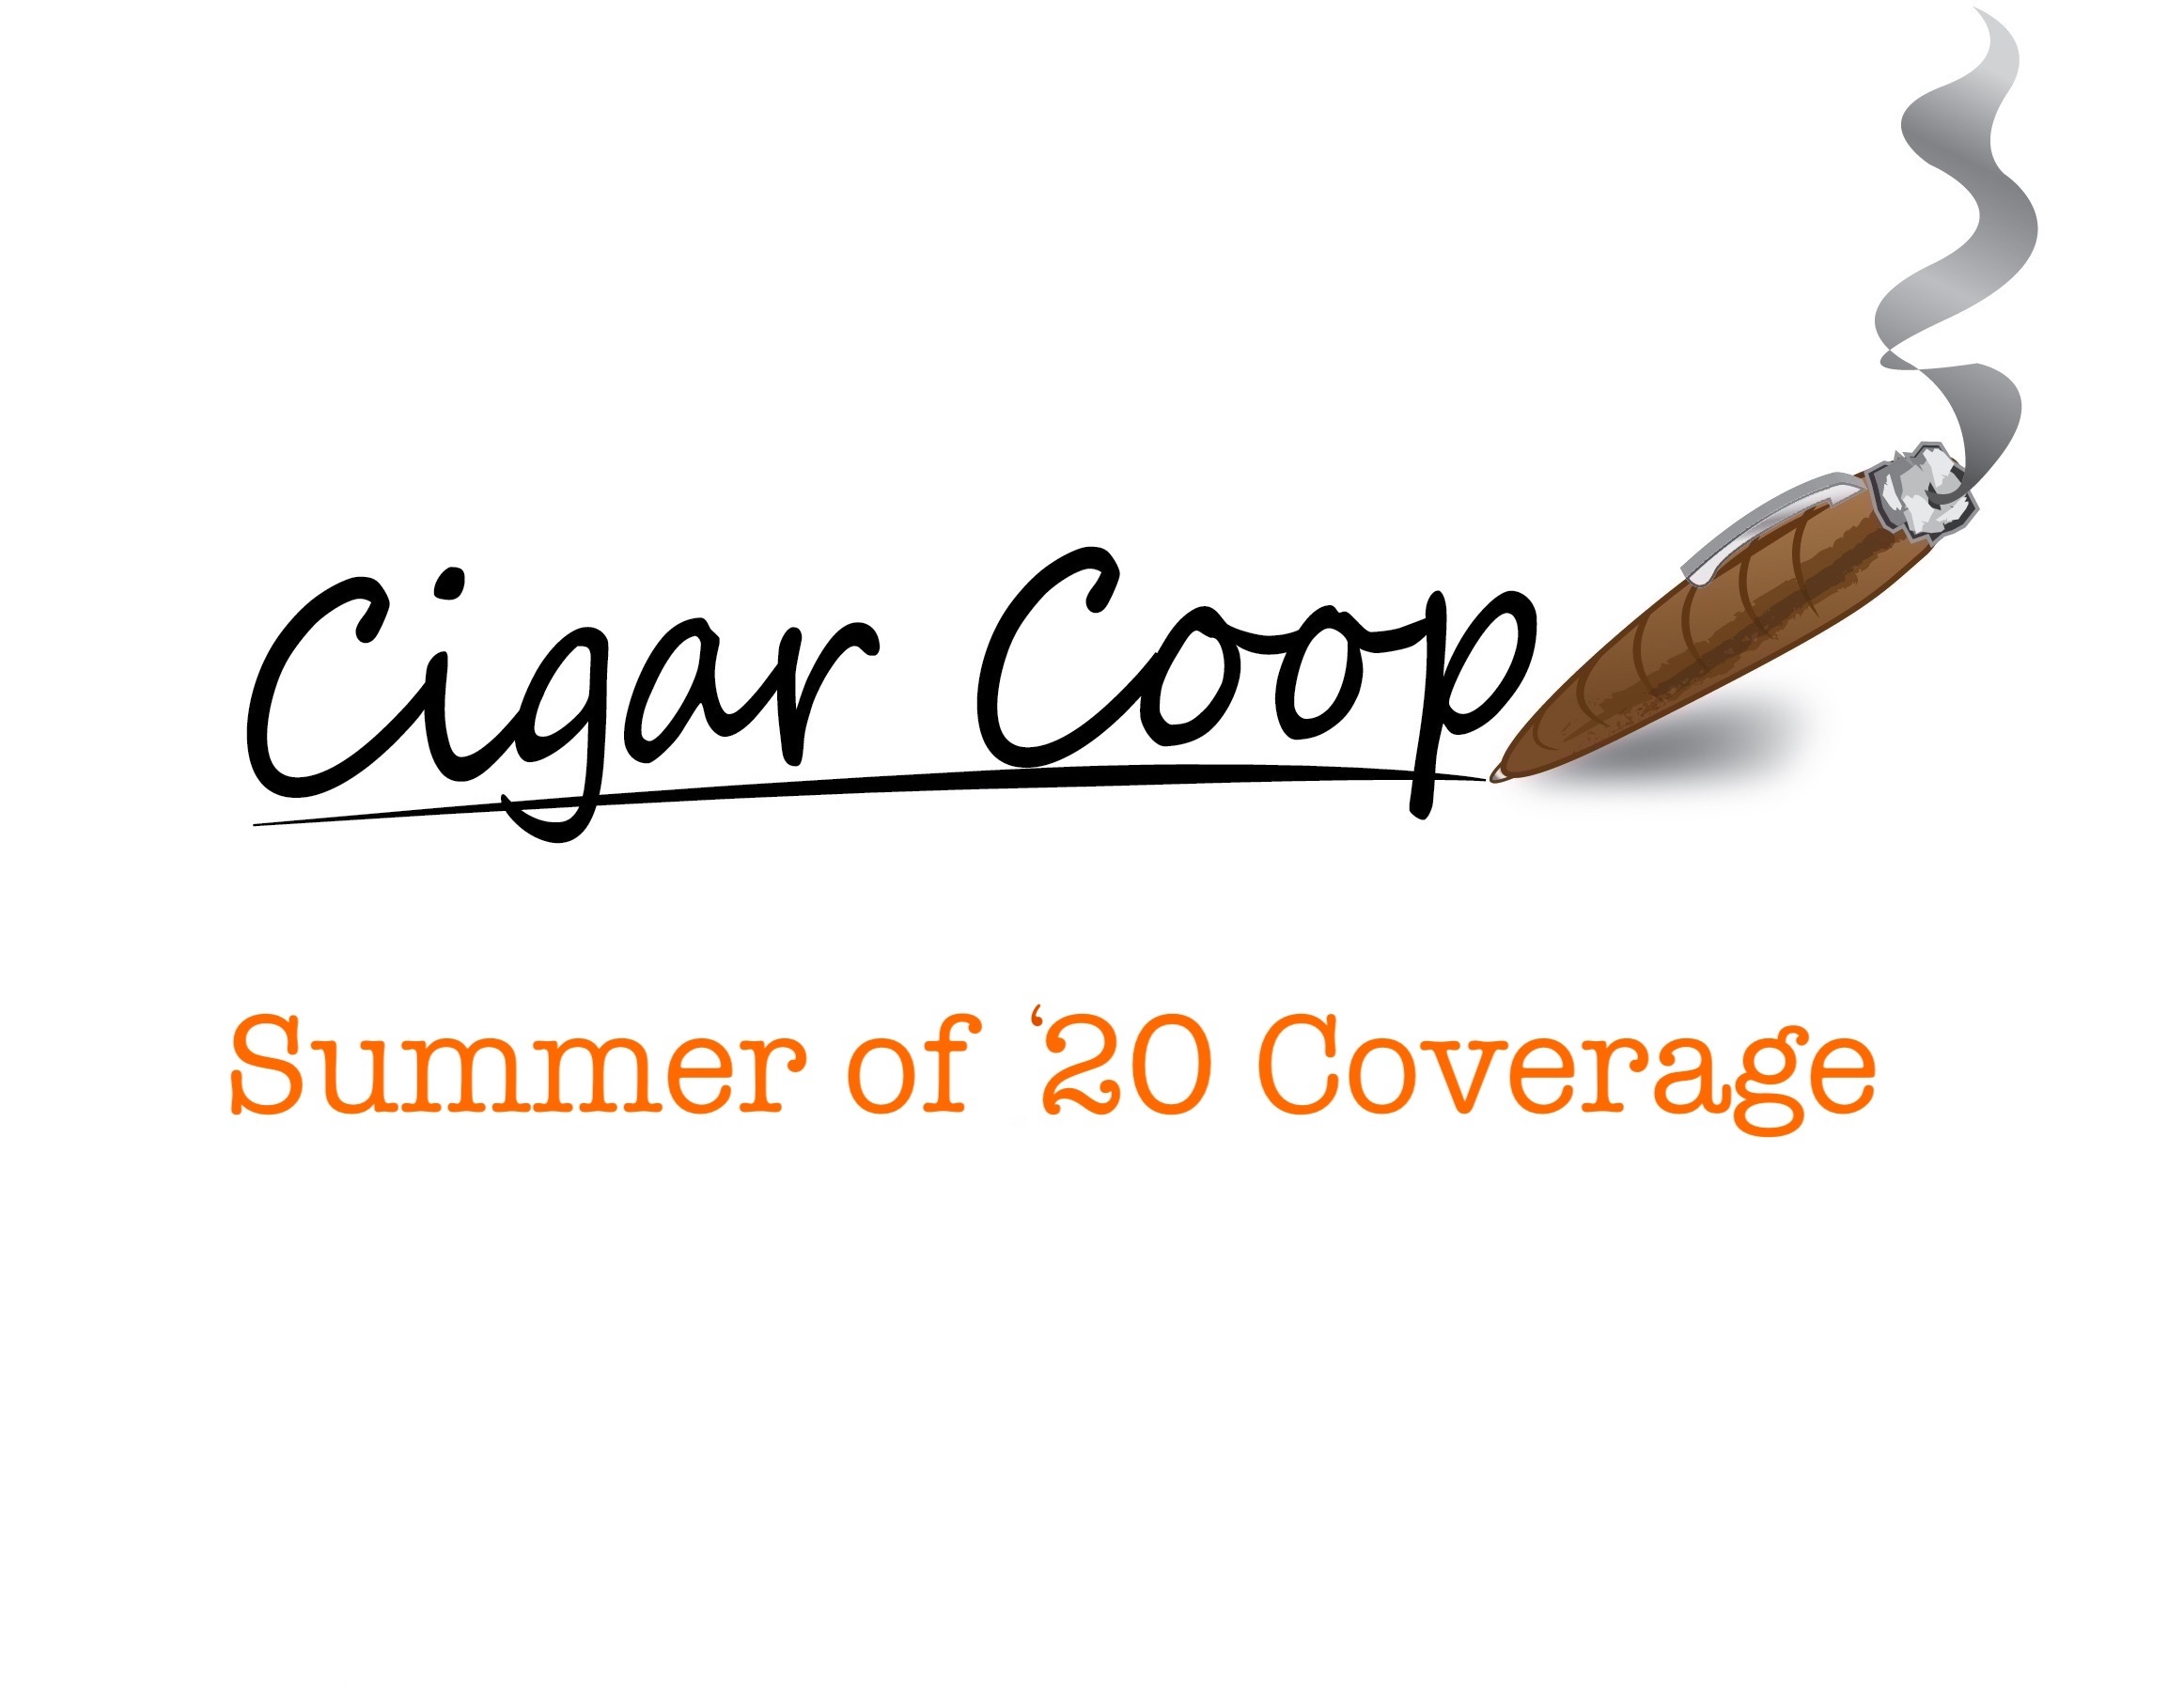 Announcement: Summer of '20 Coverage Commences on Cigar Coop